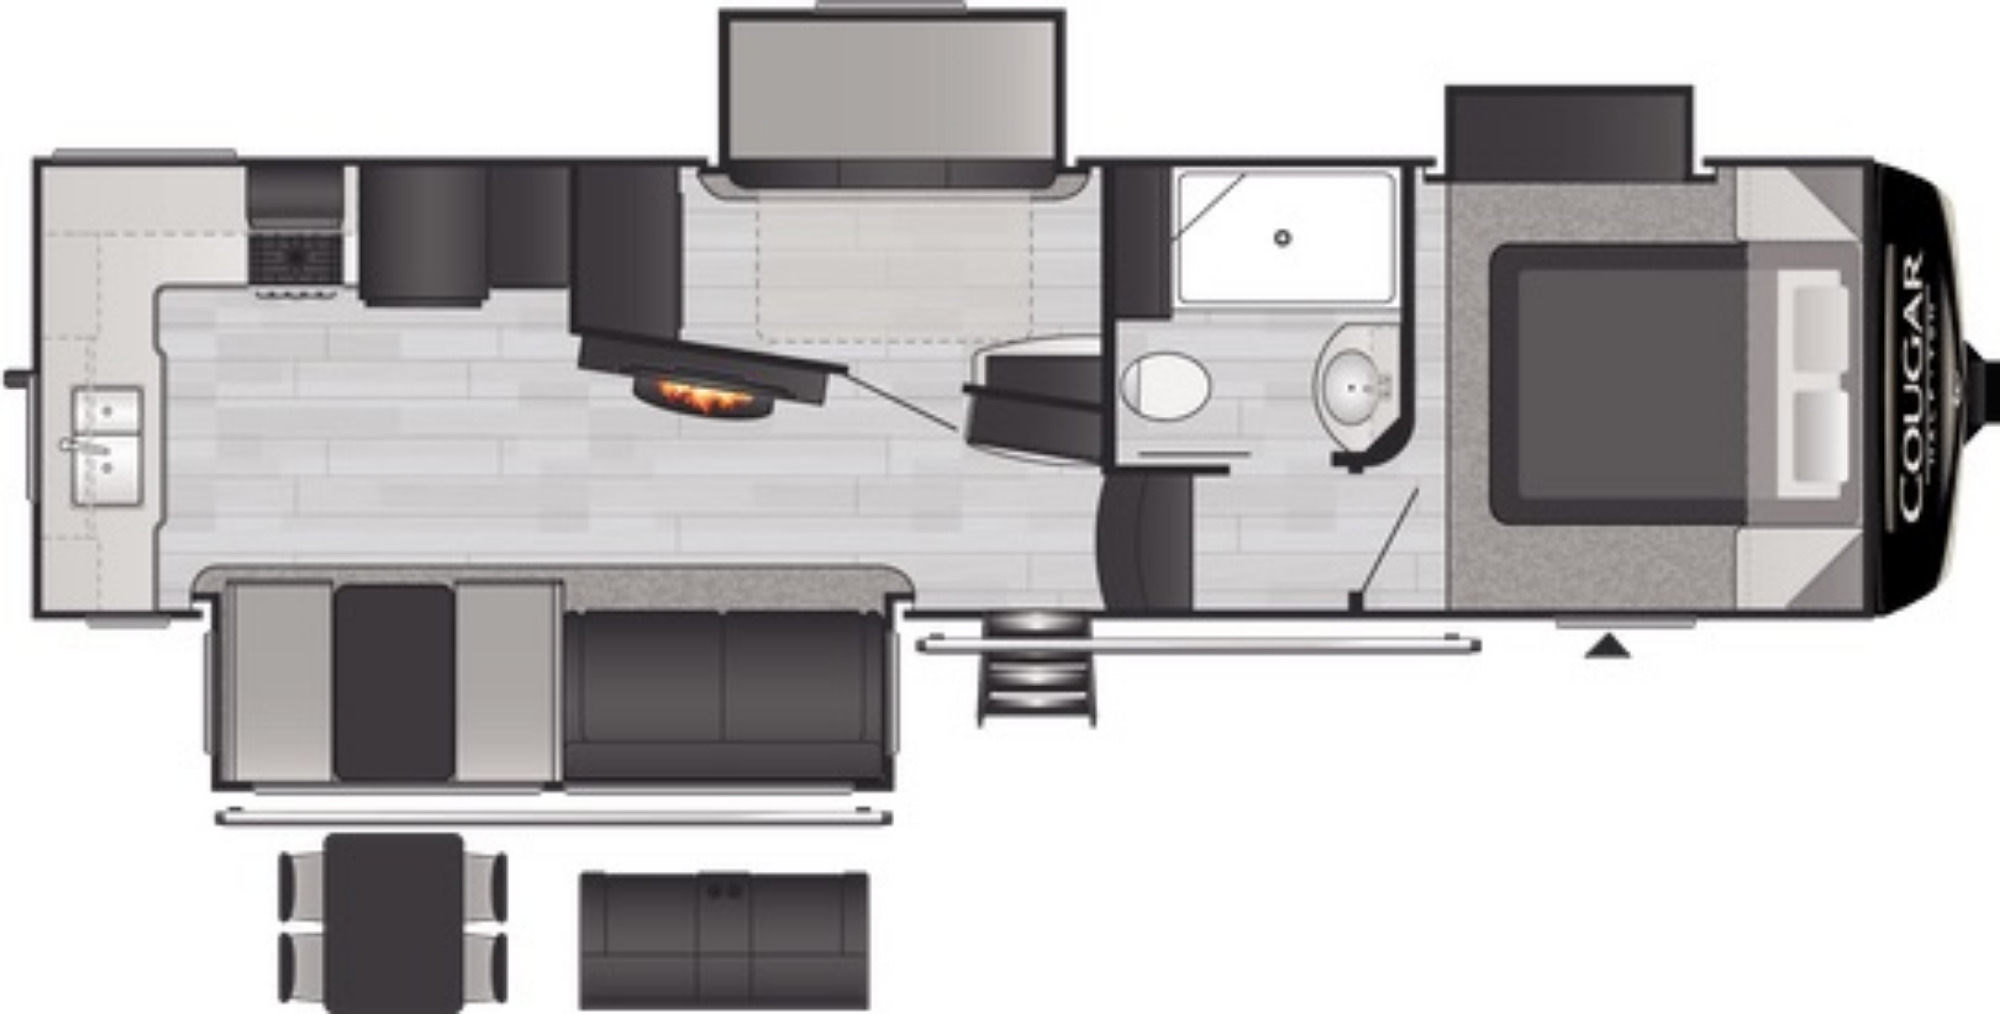 View Floor Plan for 2021 KEYSTONE COUGAR 29MBS